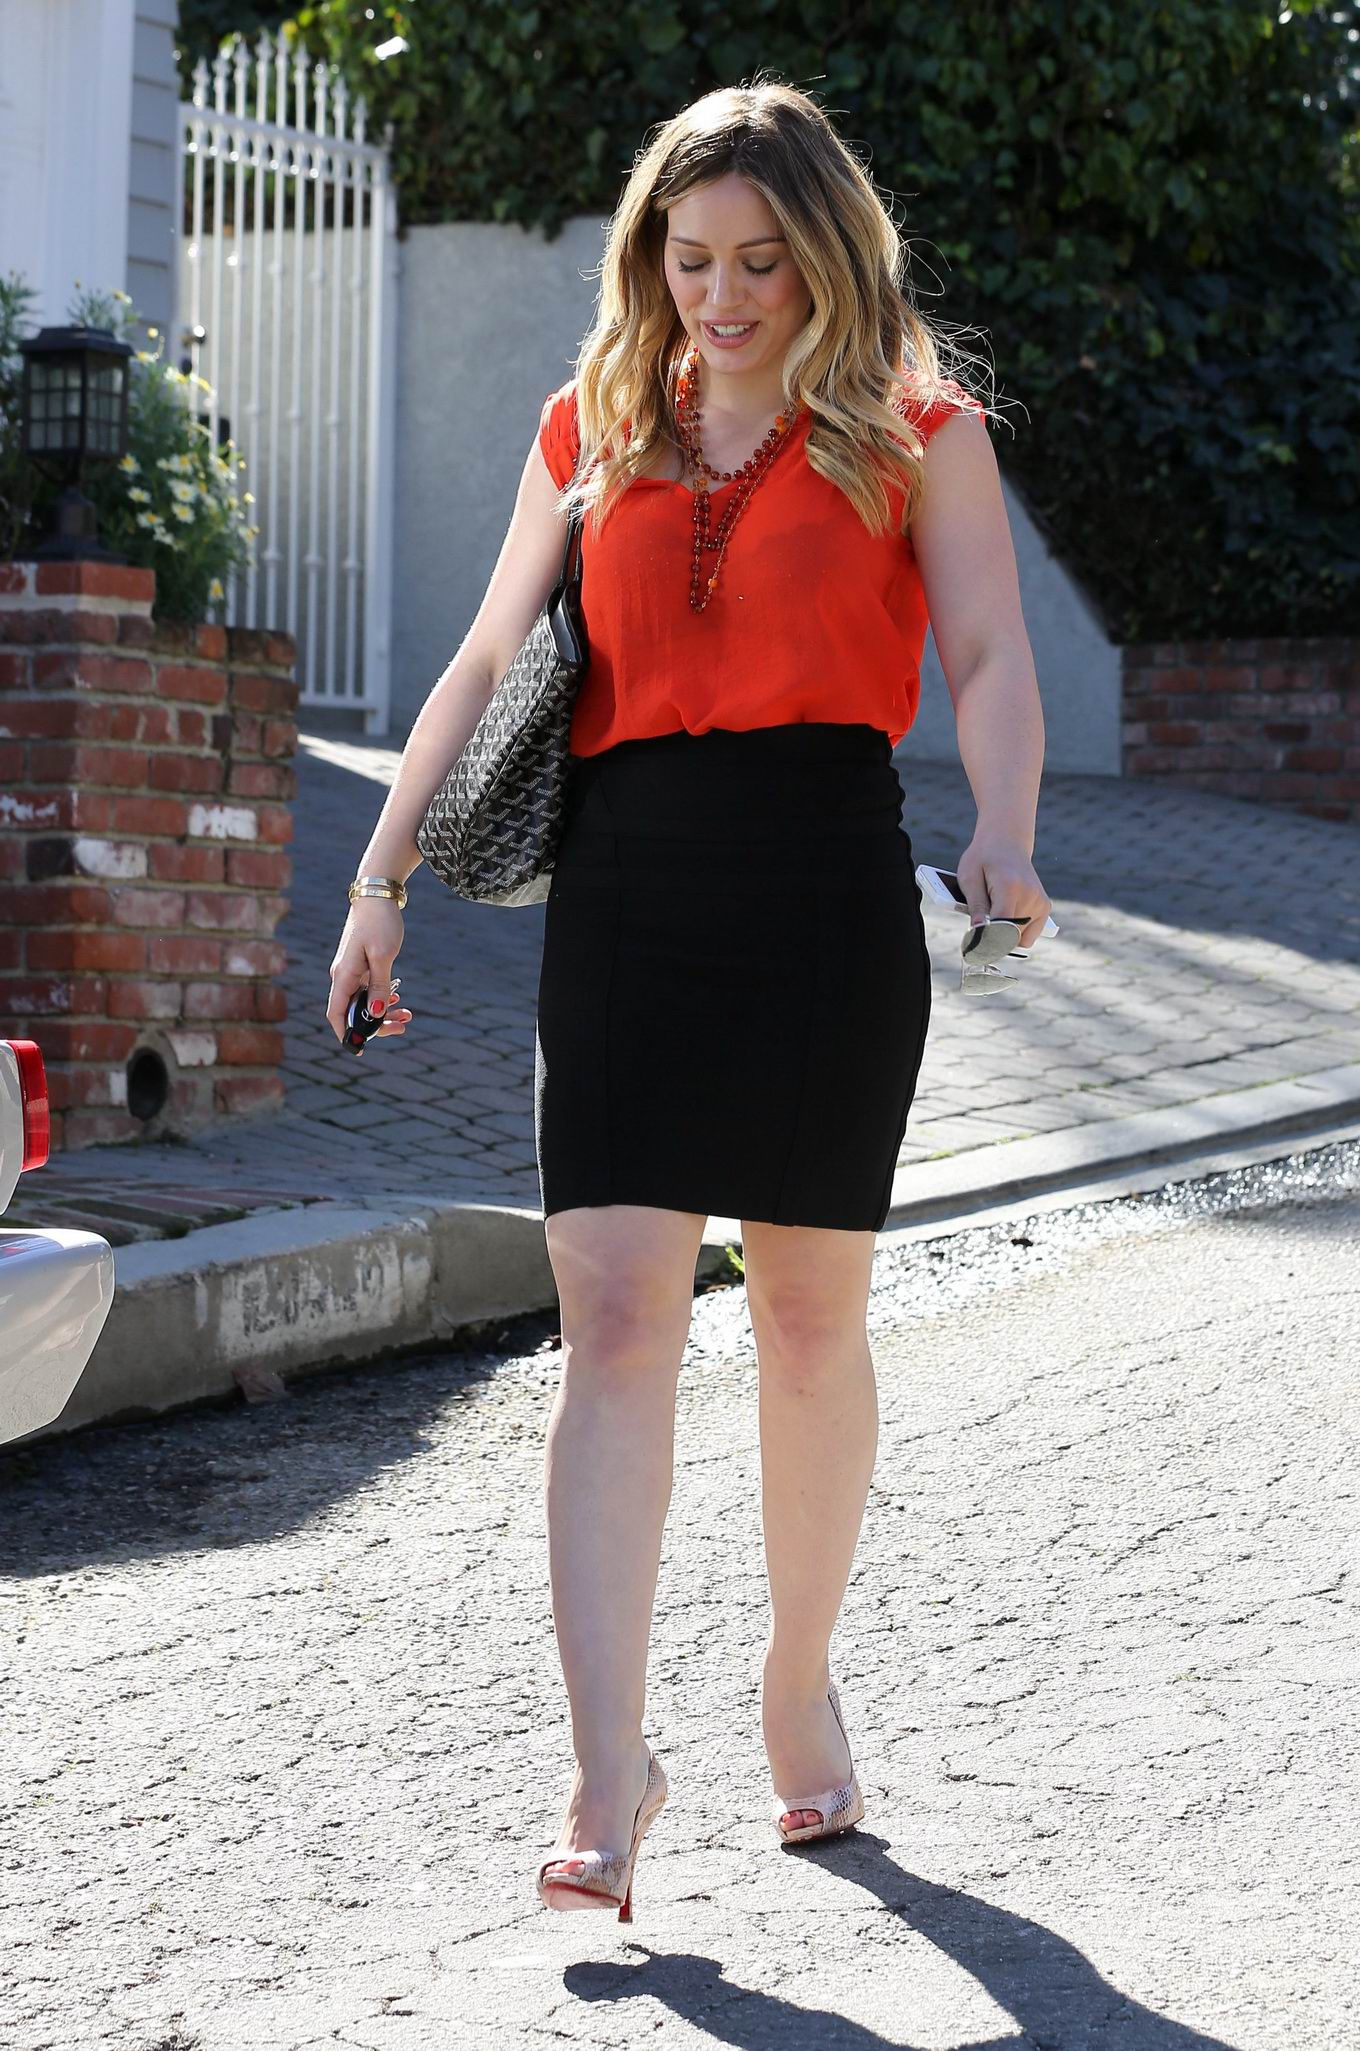 ... wearing red see-through to bra top black mini skirt out in Studio City